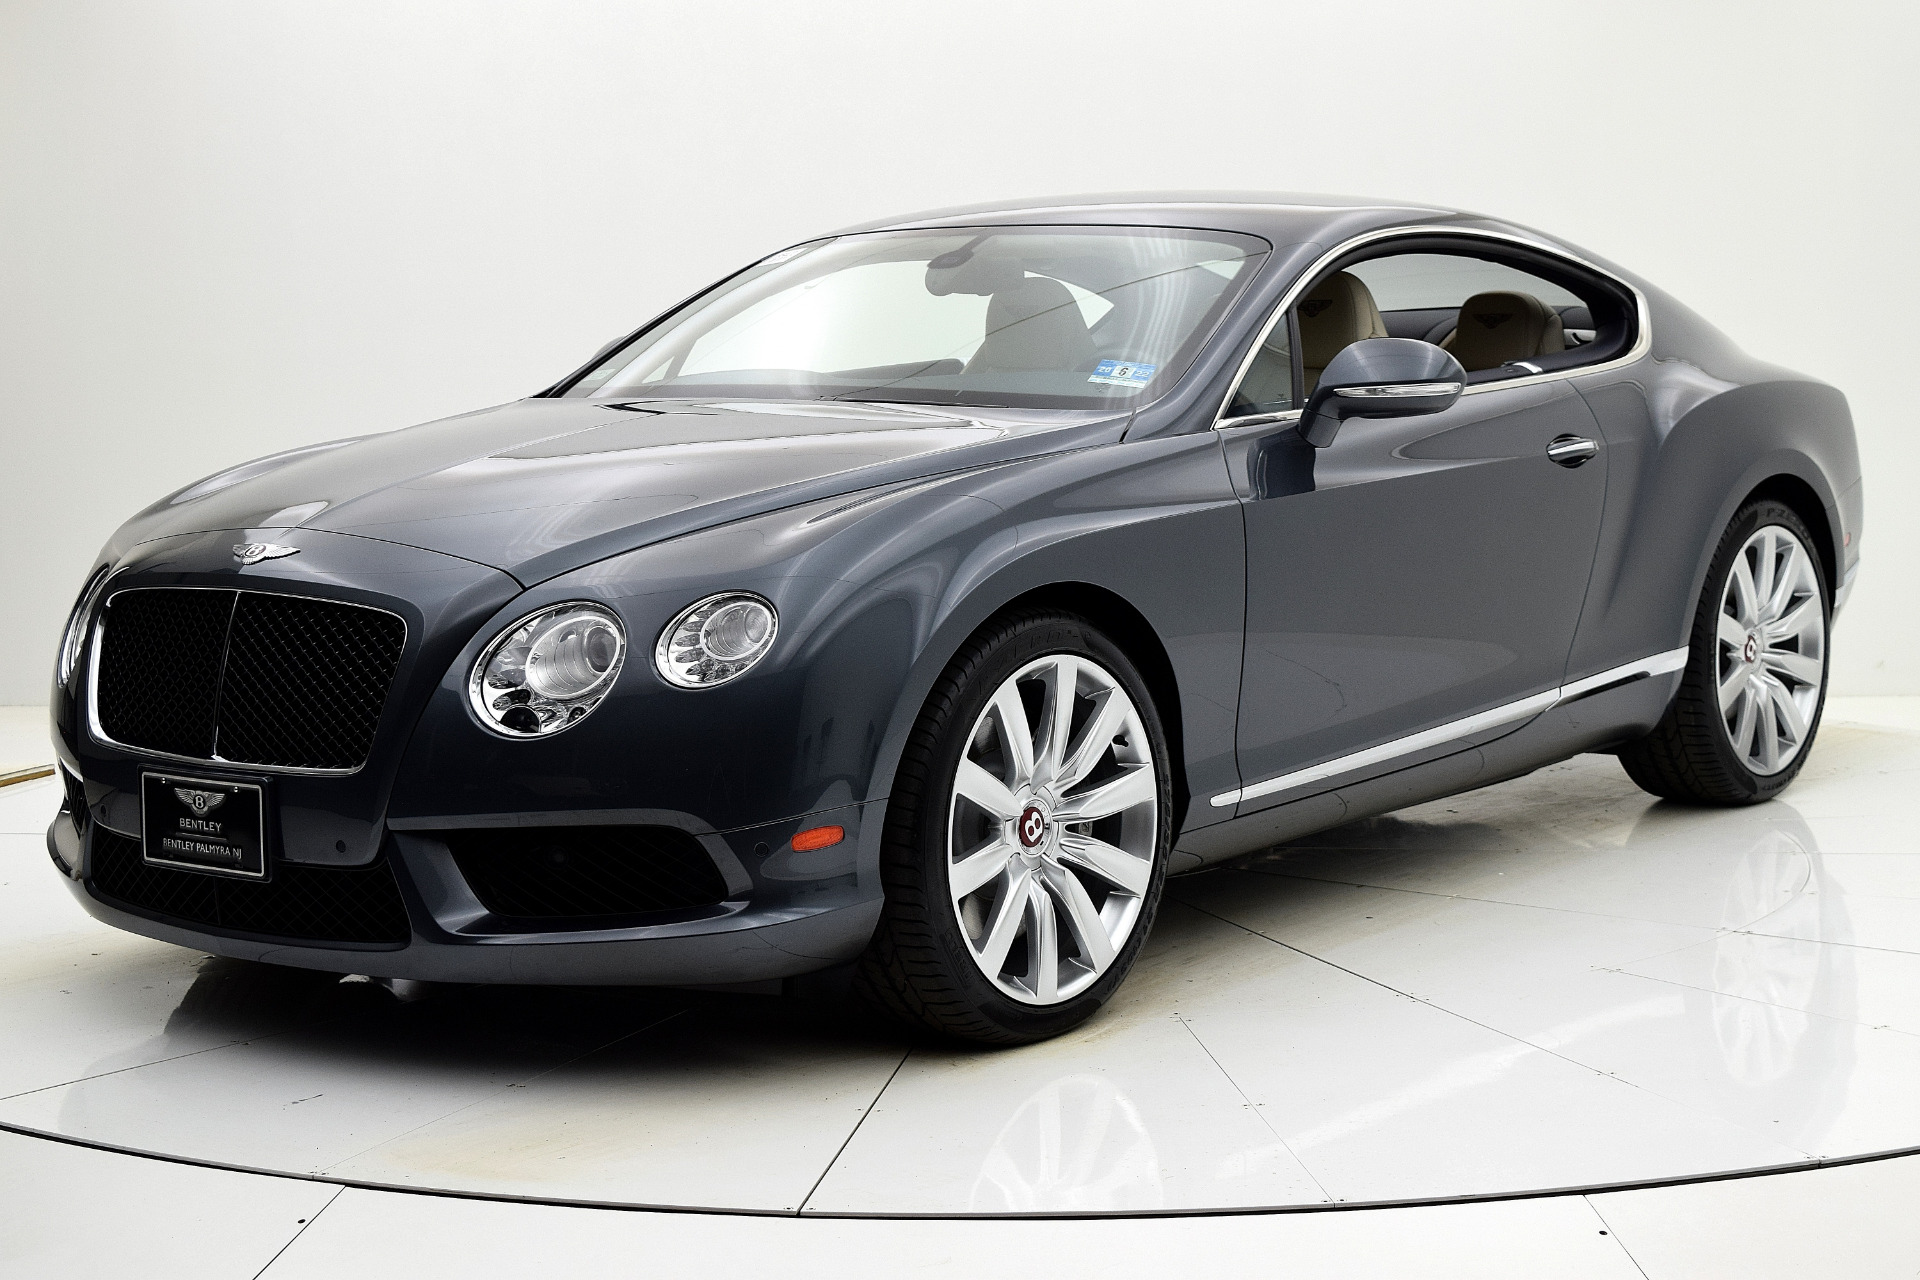 Used 2013 Bentley Continental GT V8 Coupe for sale $99,880 at F.C. Kerbeck Aston Martin in Palmyra NJ 08065 2